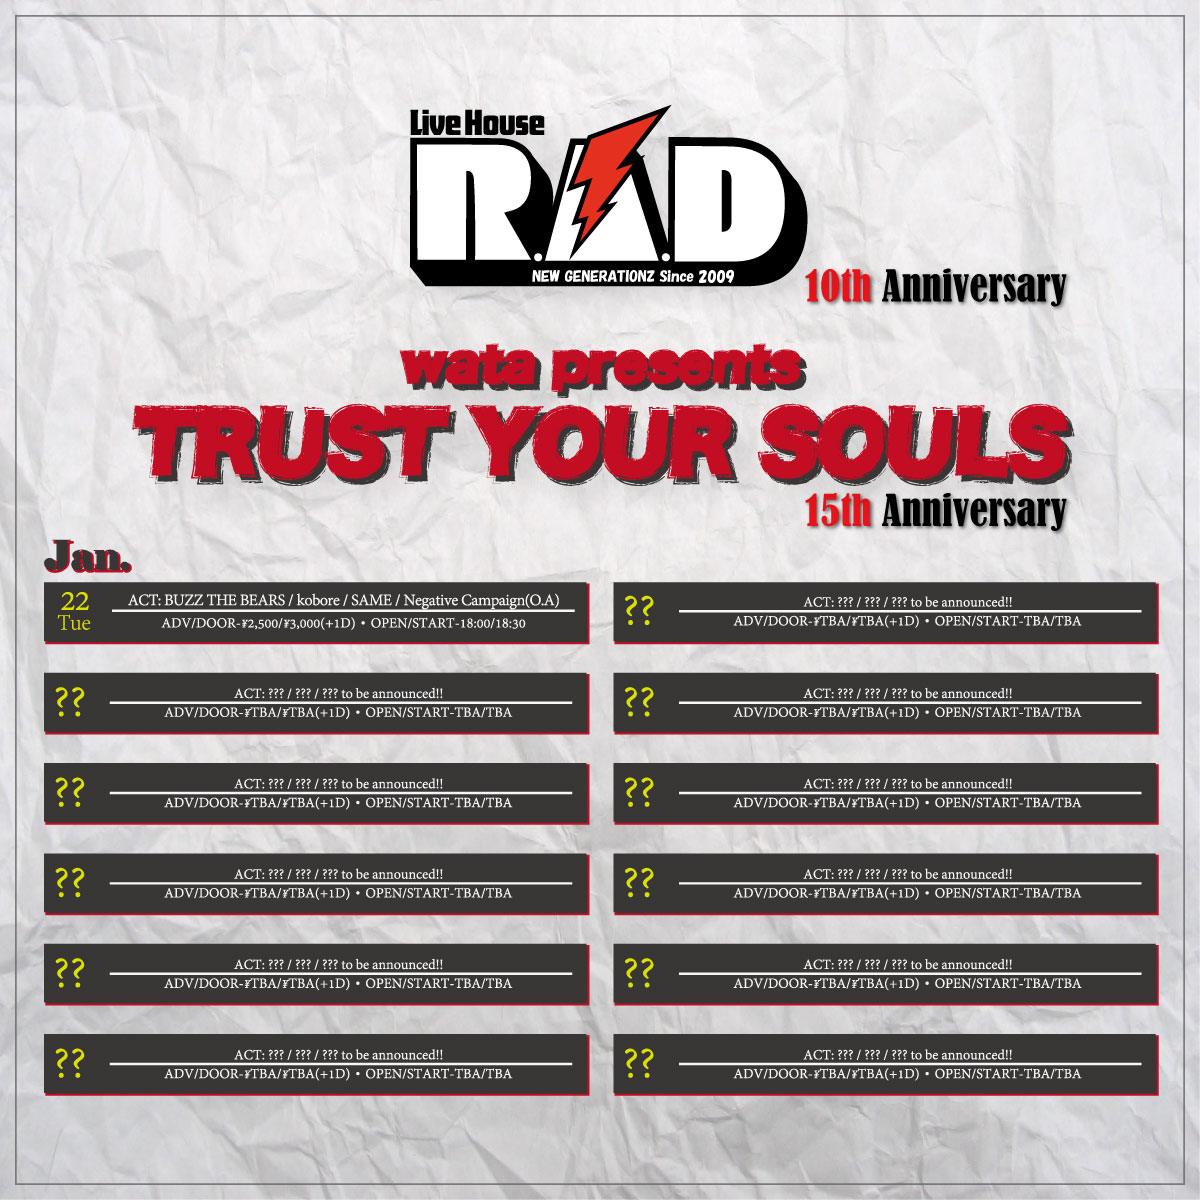 【wata presents. Live House R.A.D 10th & TRUST YOUR SOULS 15th Anniversary】